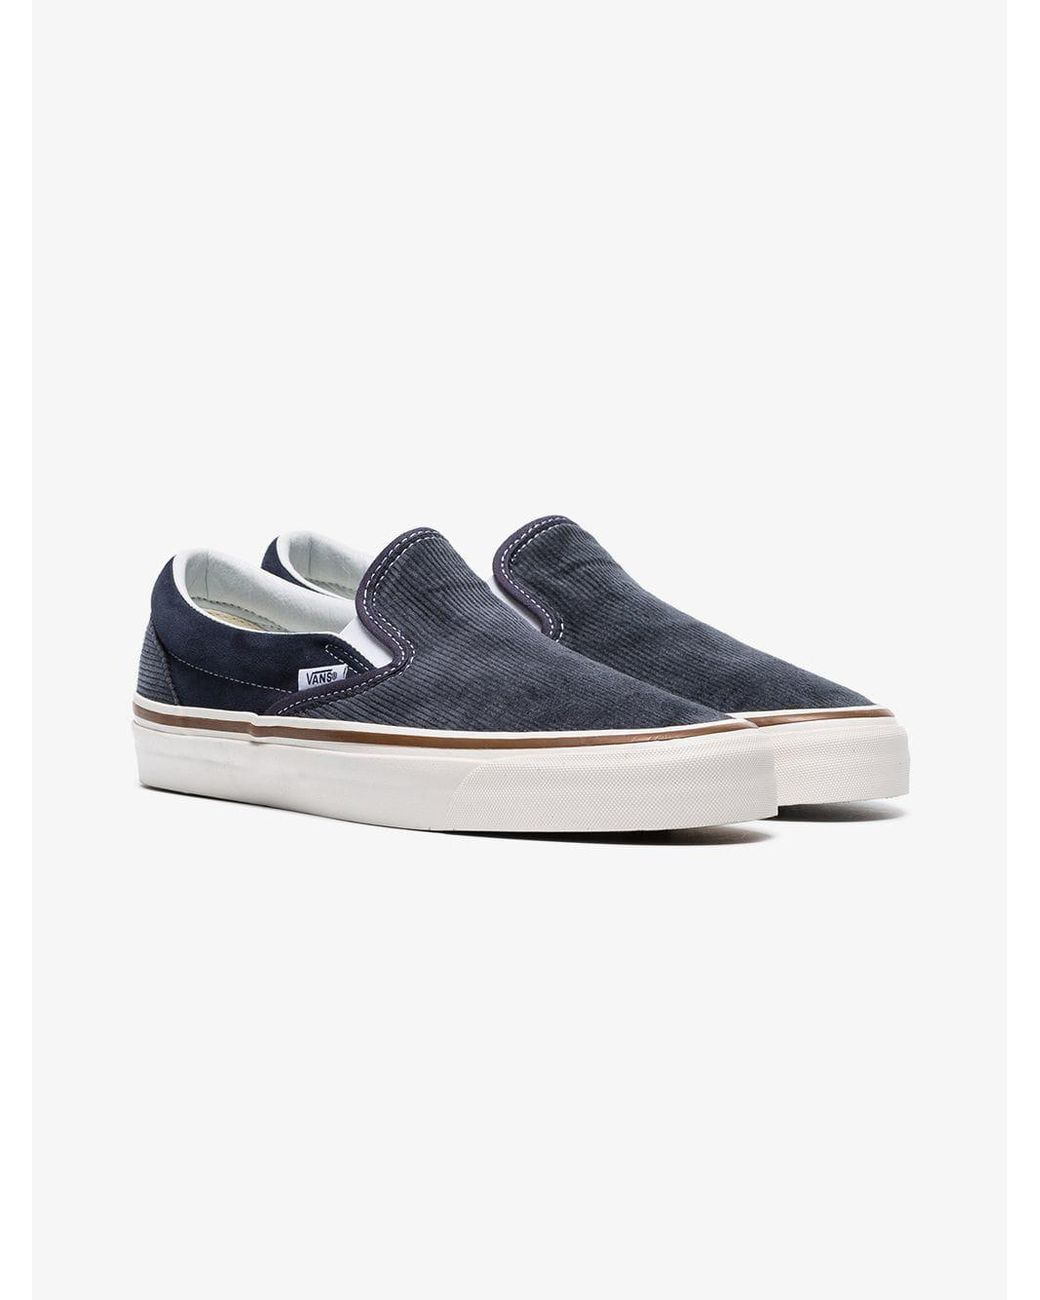 9c24e8860d Lyst - Vans Navy Blue And Grey 98 Dx Corduroy Slip On Sneakers in ...